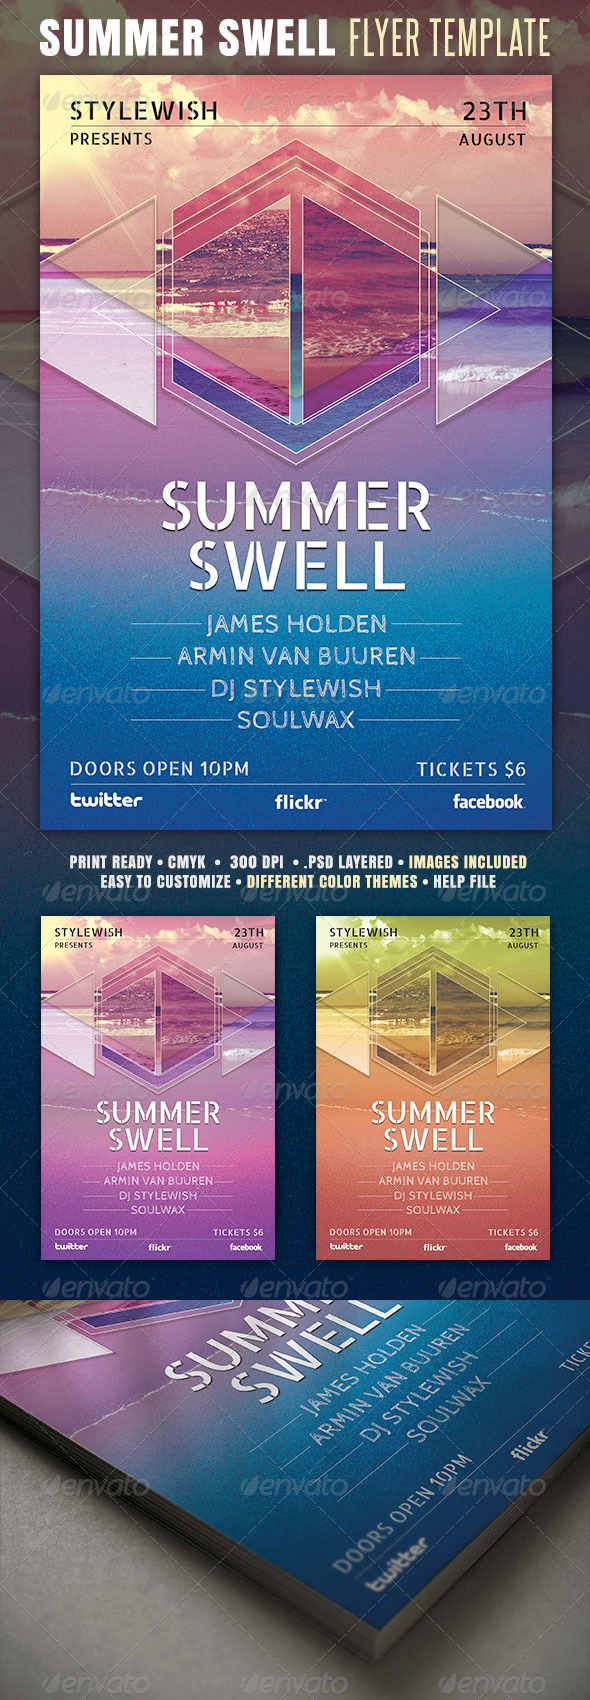 GraphicRiver Summer Swell Flyer 4445987